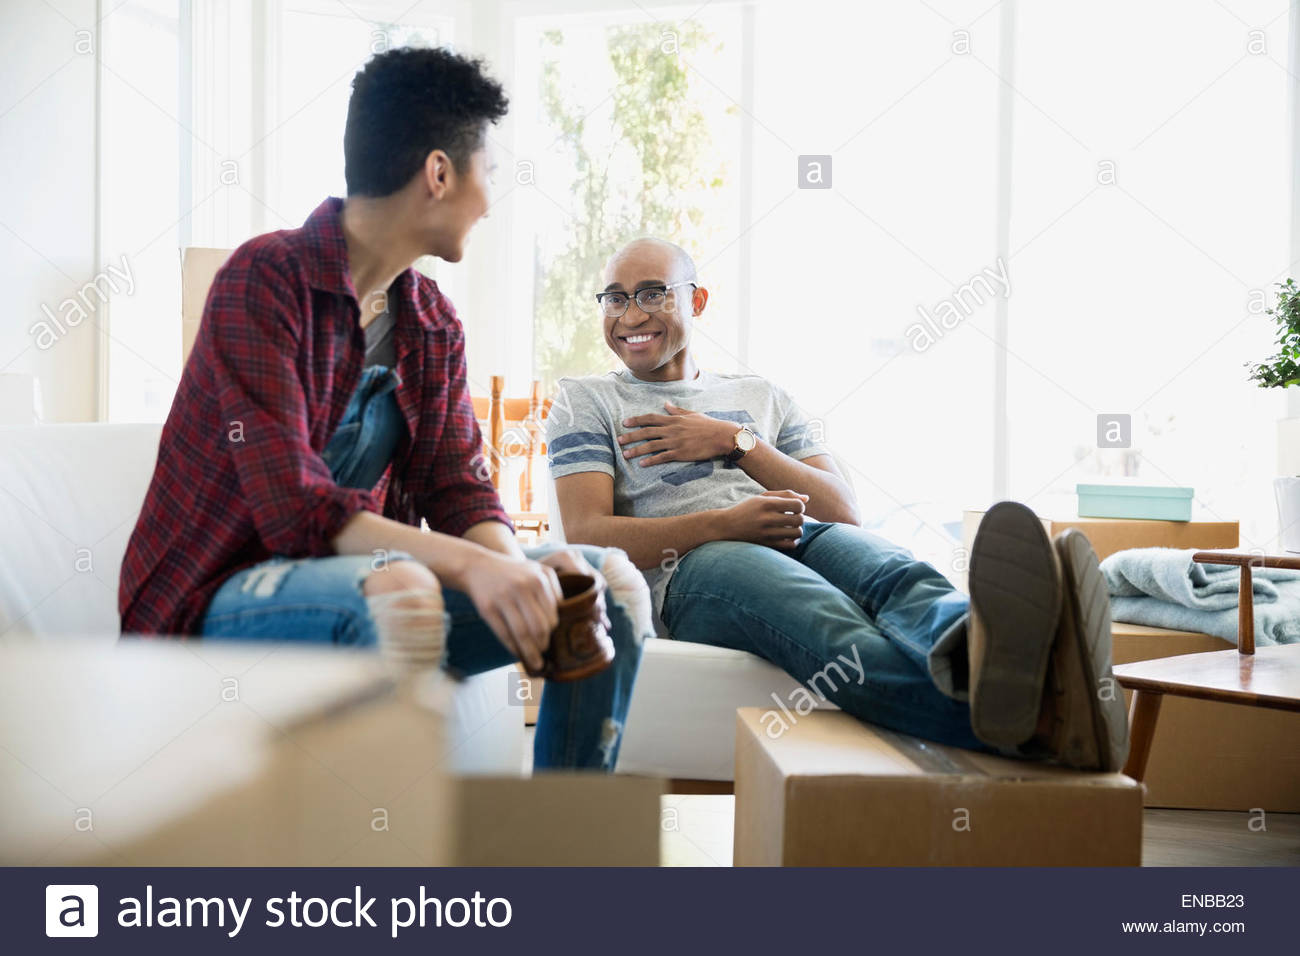 Couple relaxing surrounded by moving boxes - Stock Image